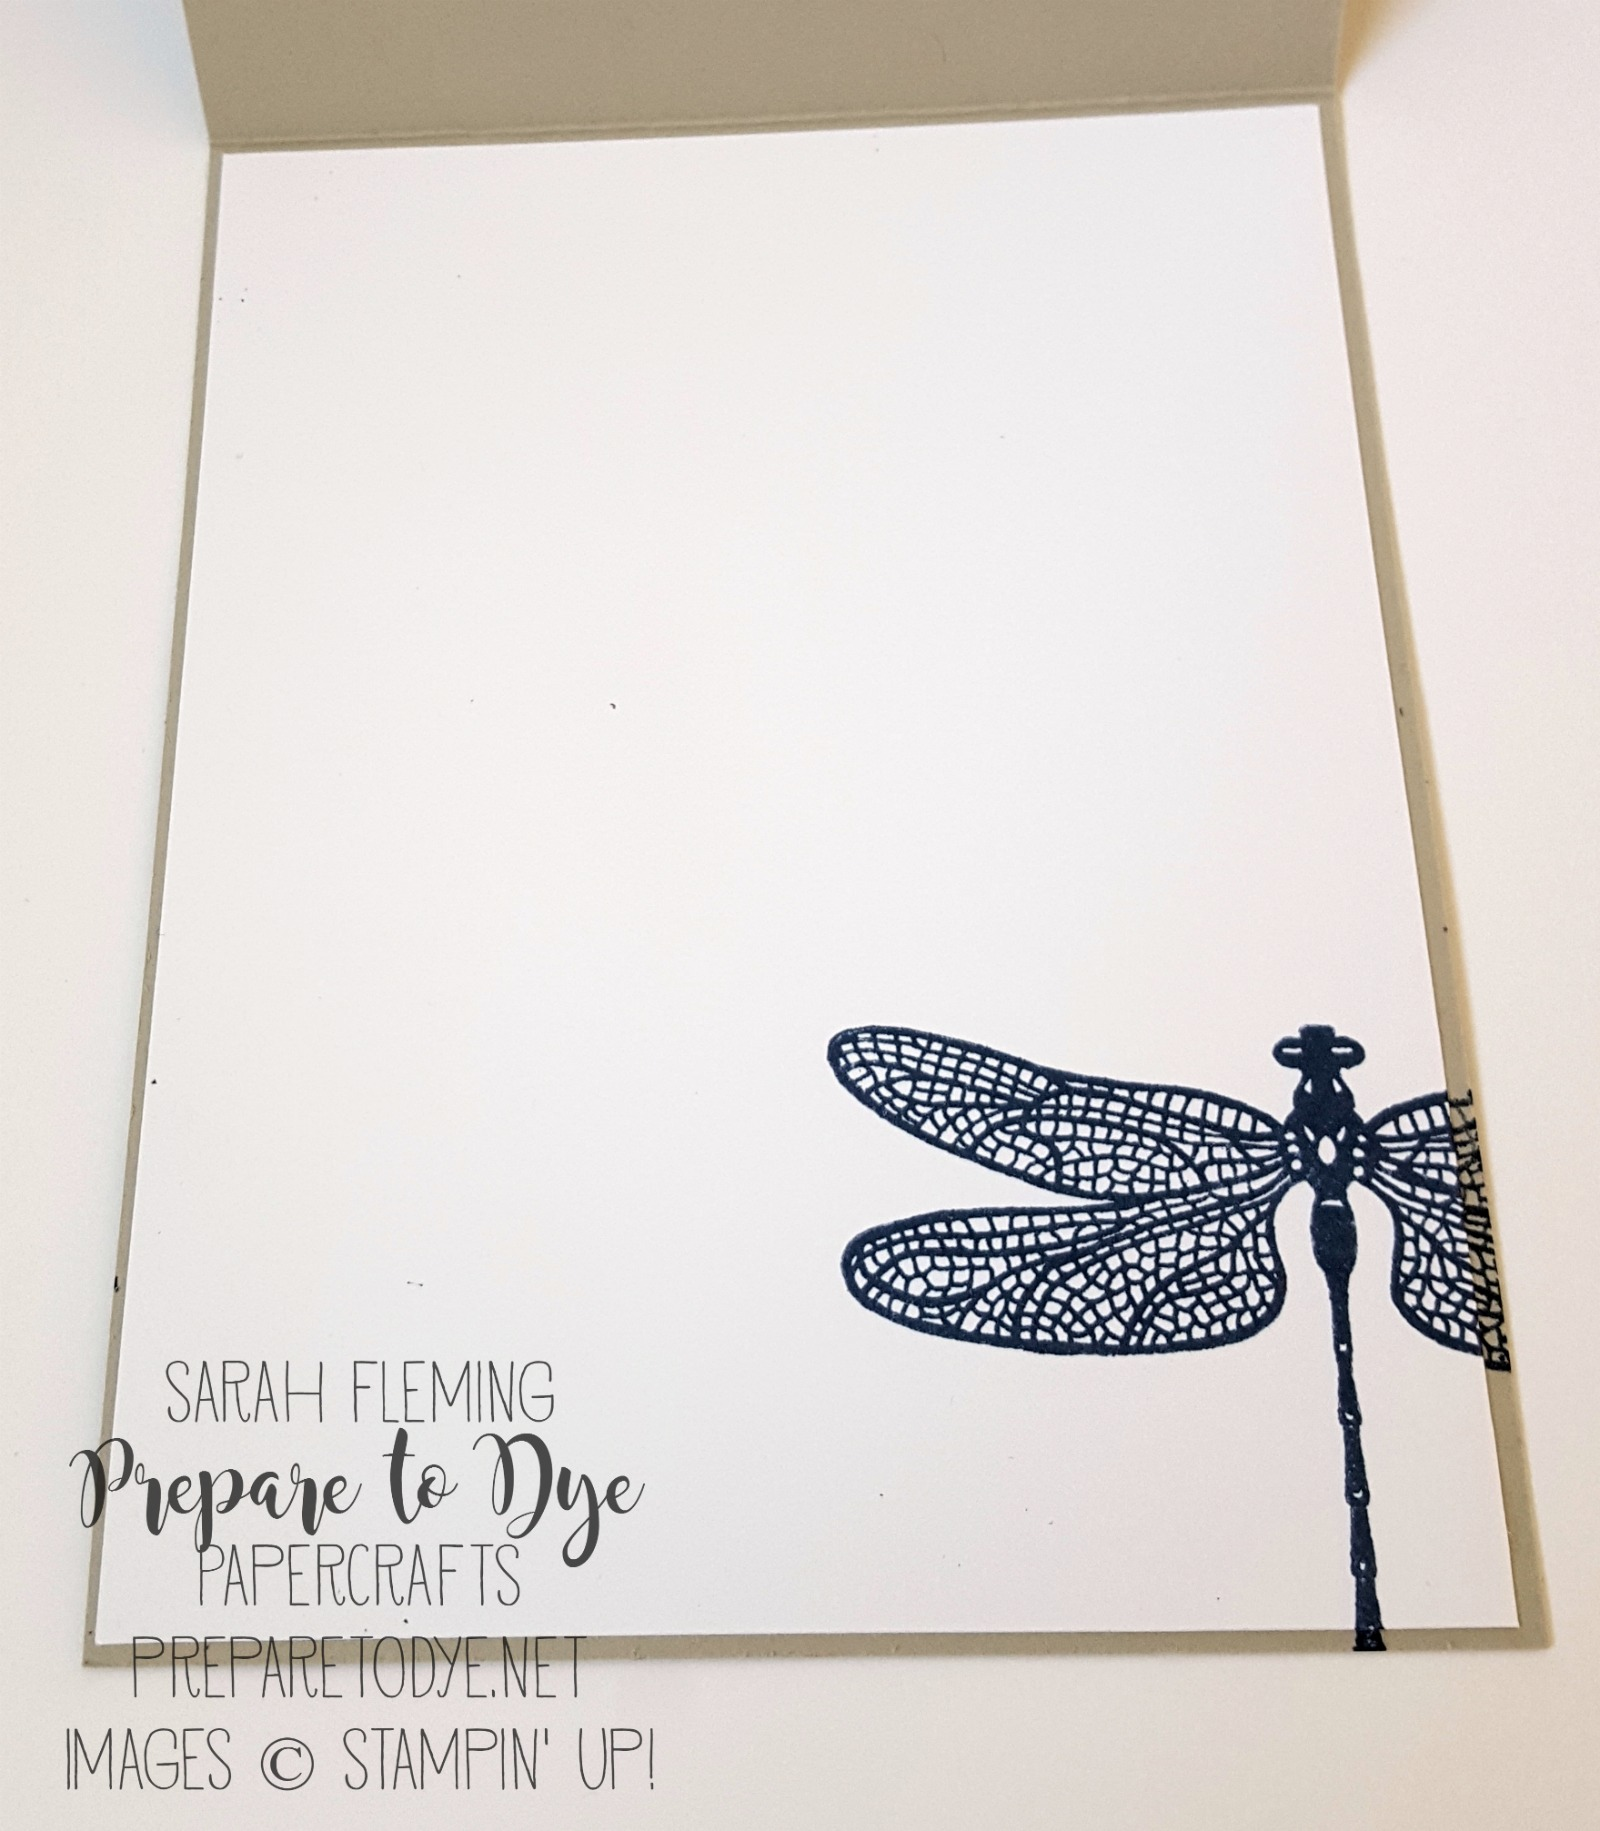 Stampin' Up! Dragonfly Dreams stamps -- don't forget to finish the inside of your card! - Sarah Fleming - Prepare to Dye Papercrafts